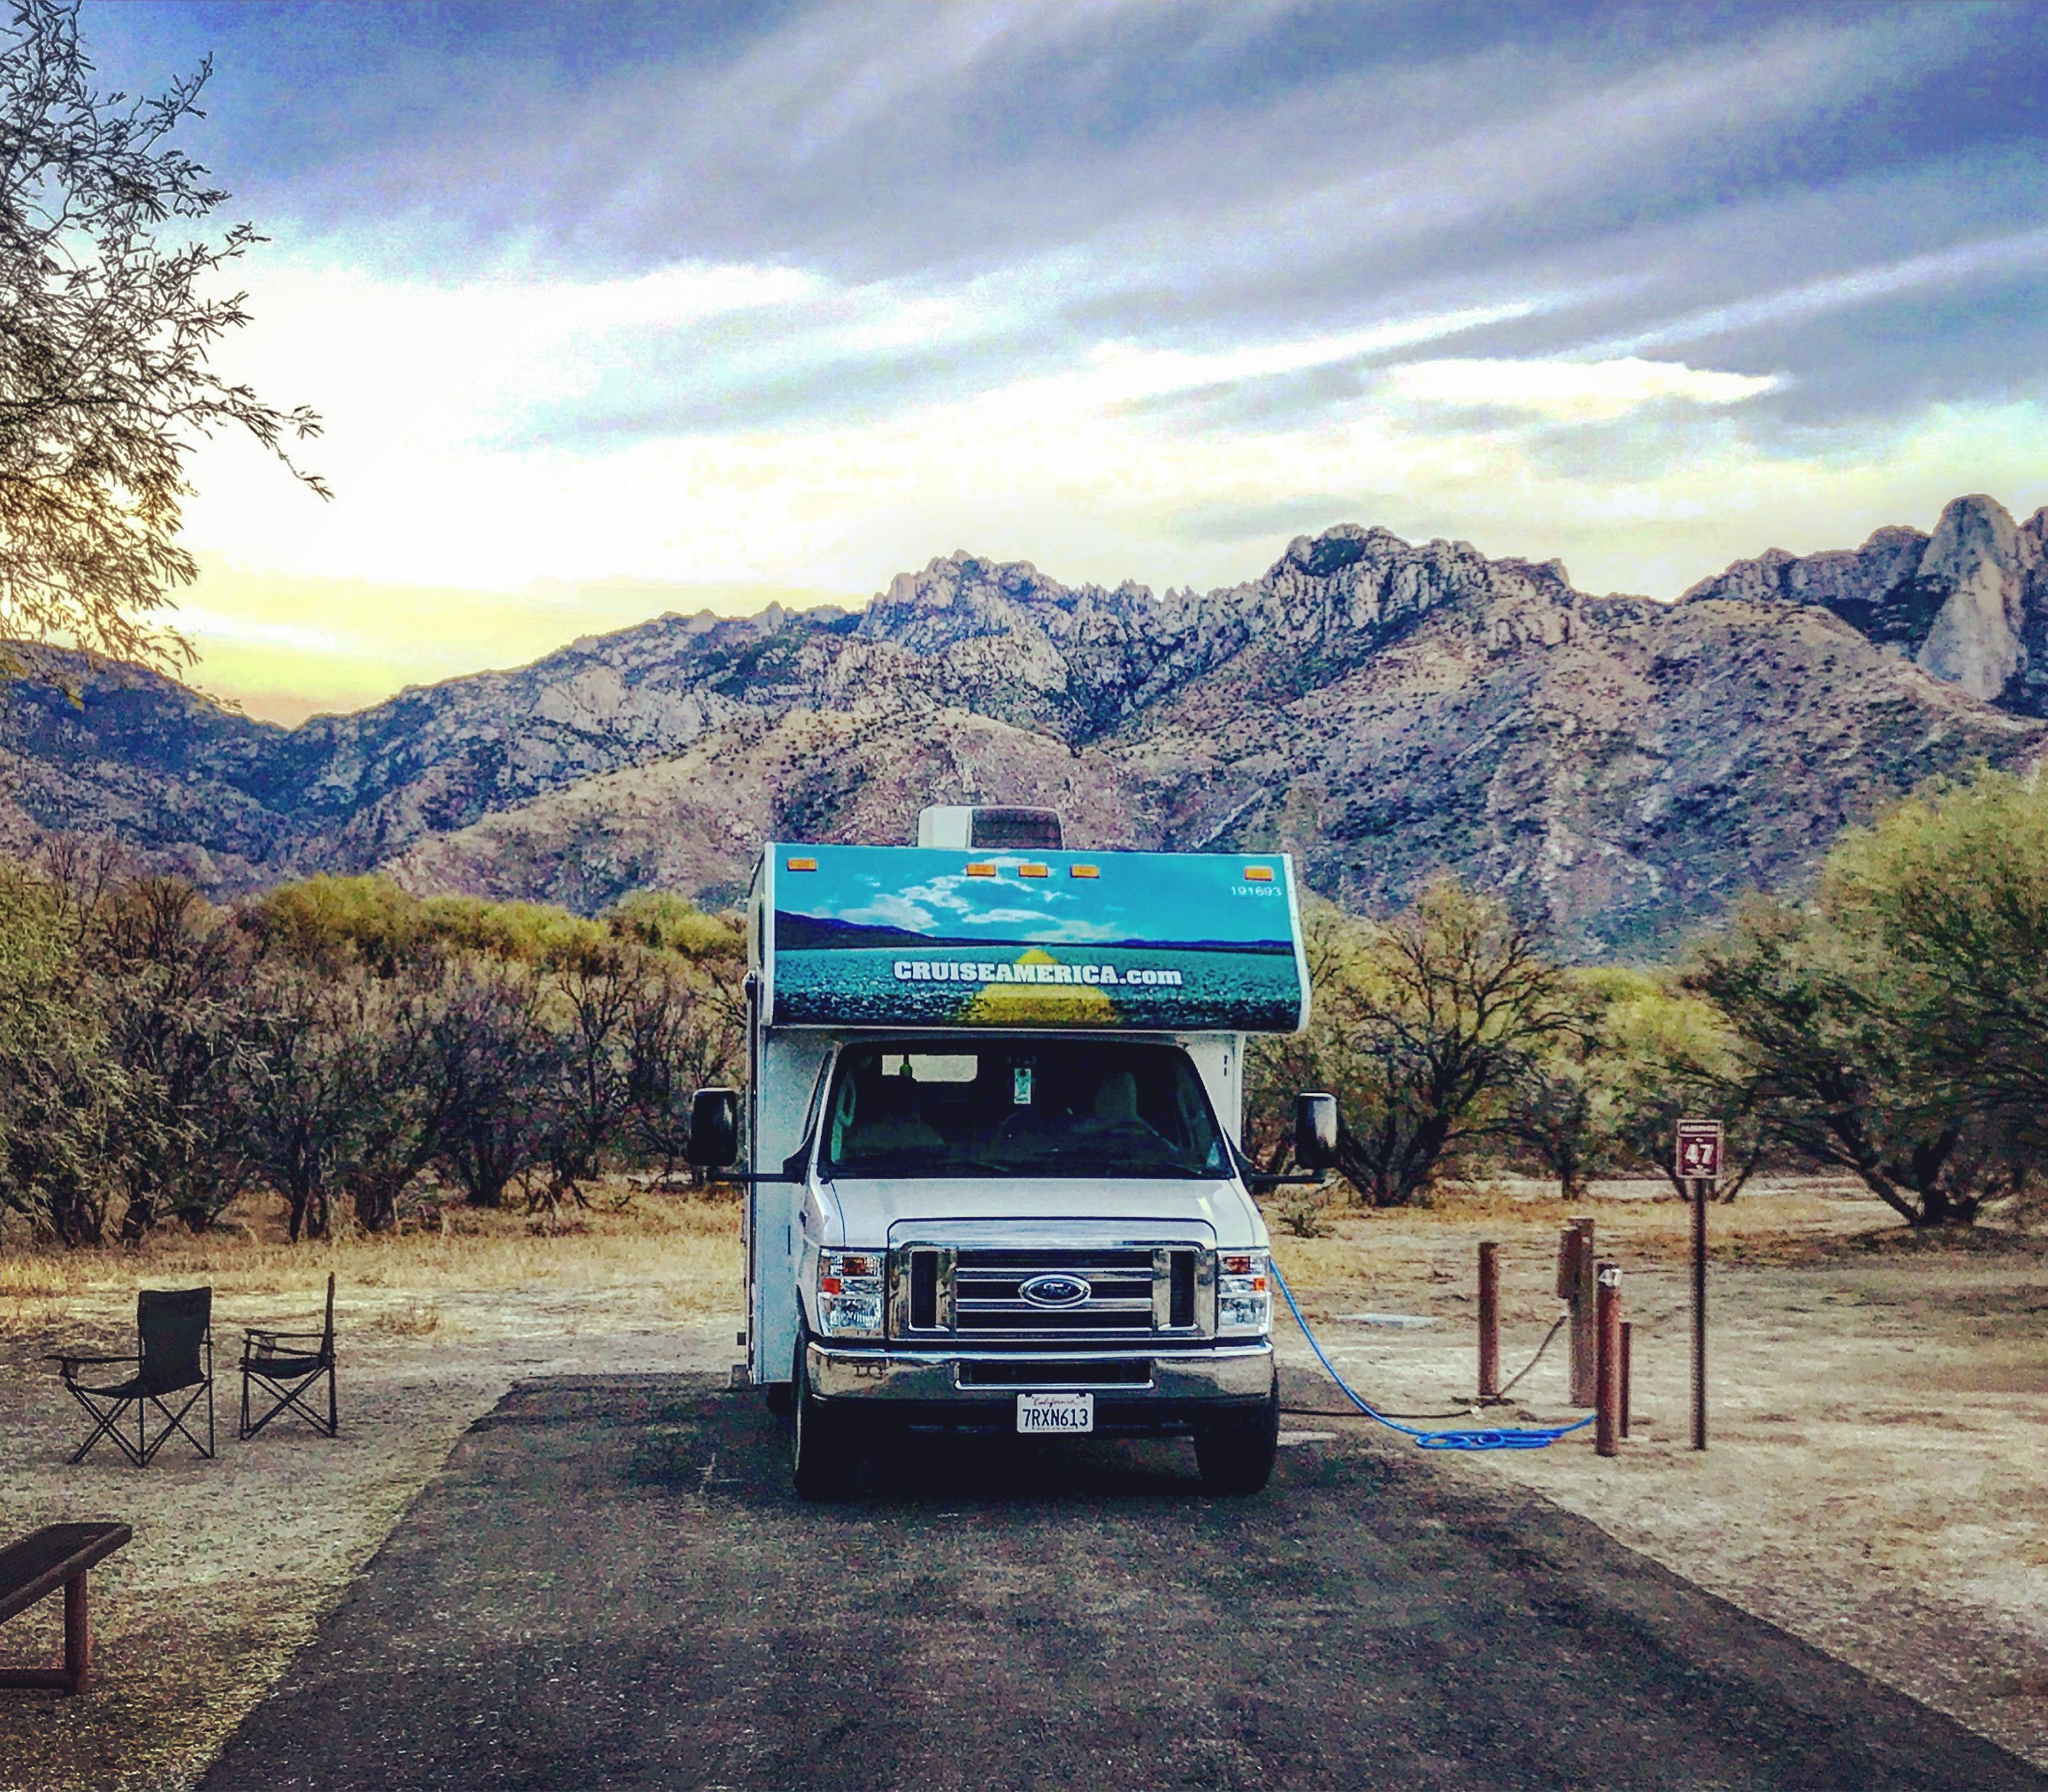 Our RV at Catalina State Park